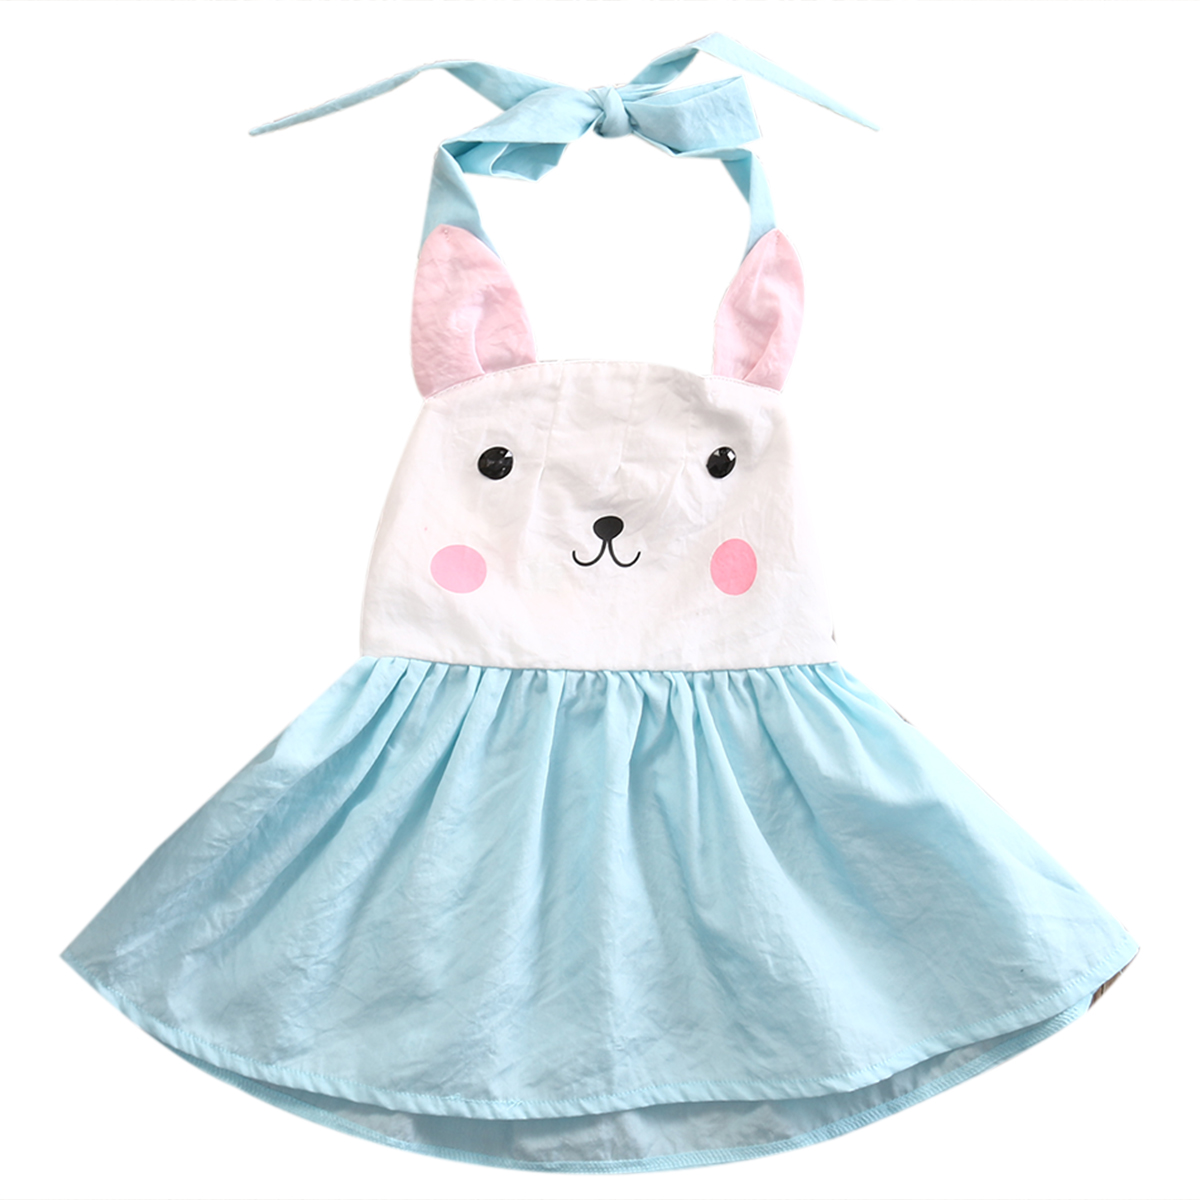 Kids Baby Girls Clothing Toddler Little Bunny Summer Casual Cute Party Dress Clothes Outfits baby kids baseball season clothes baby girls love baseball clothing girls summer boutique baseball outfits with accessories